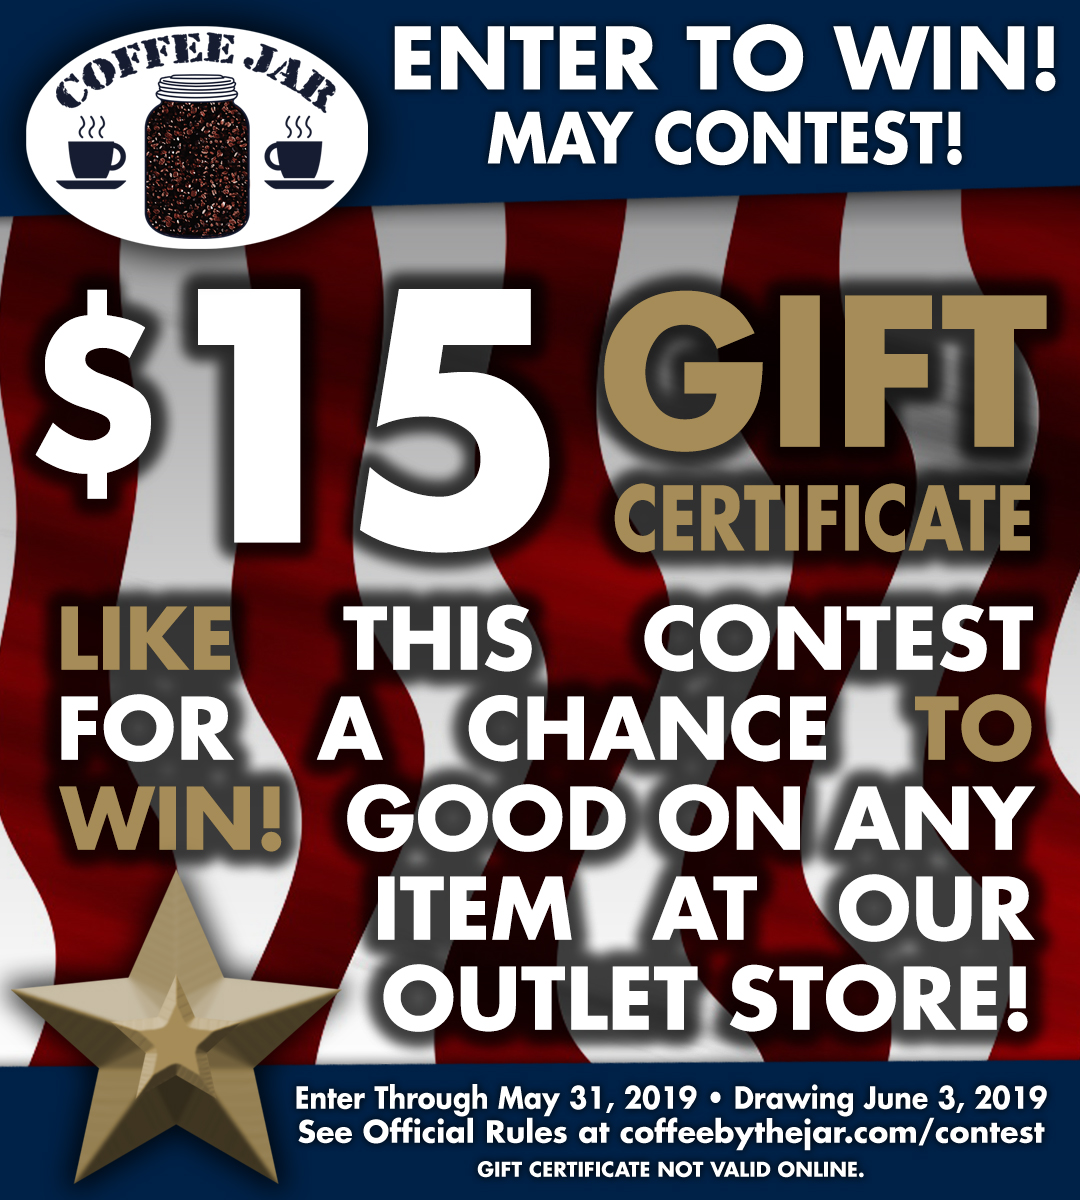 May Contest - Enter through May 31, 2019, Winner Picked June 3, 2019